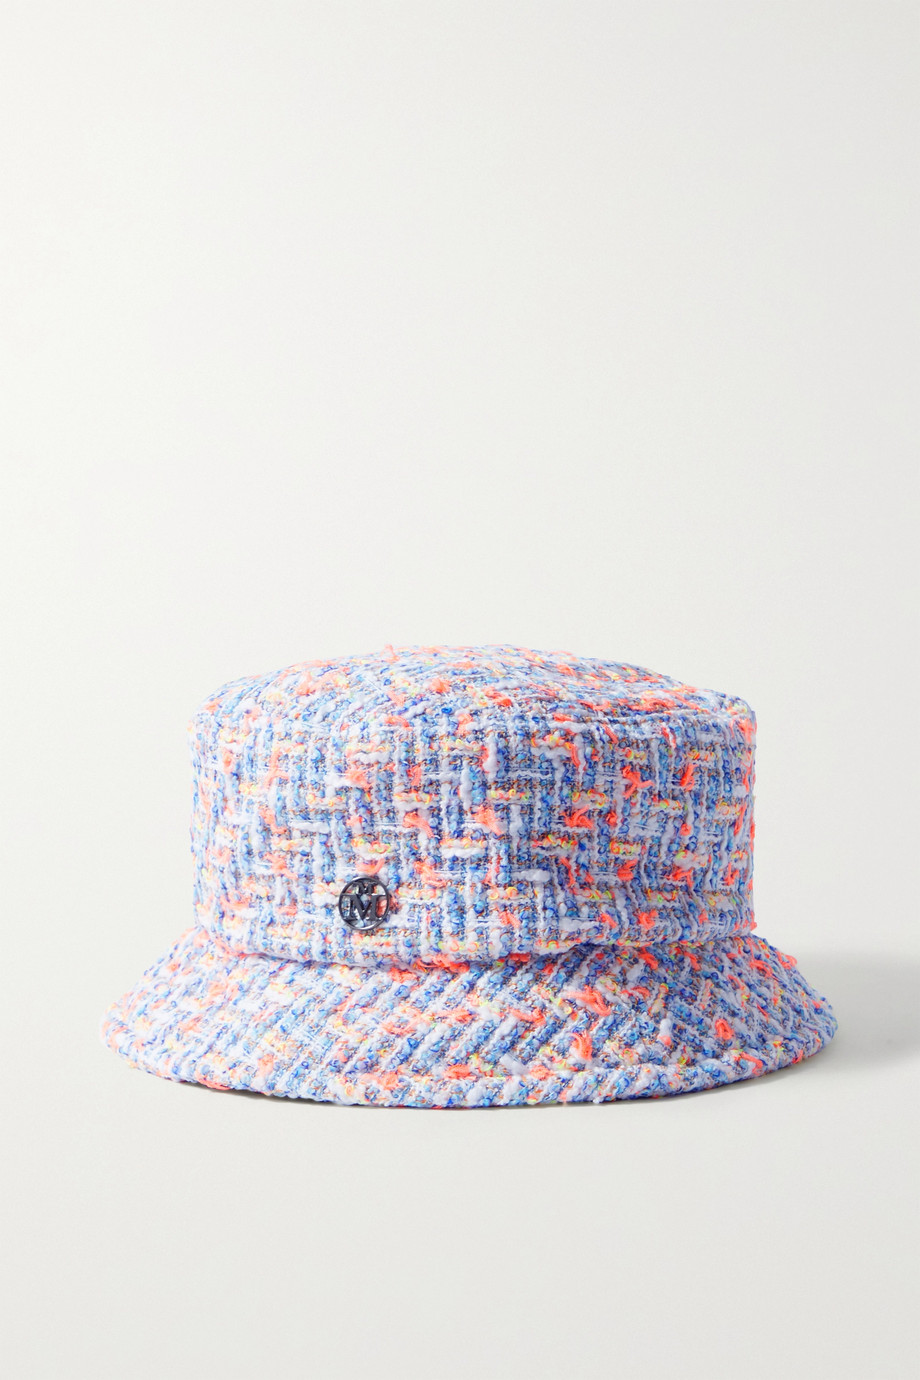 Maison Michel Axel cotton-blend tweed bucket hat